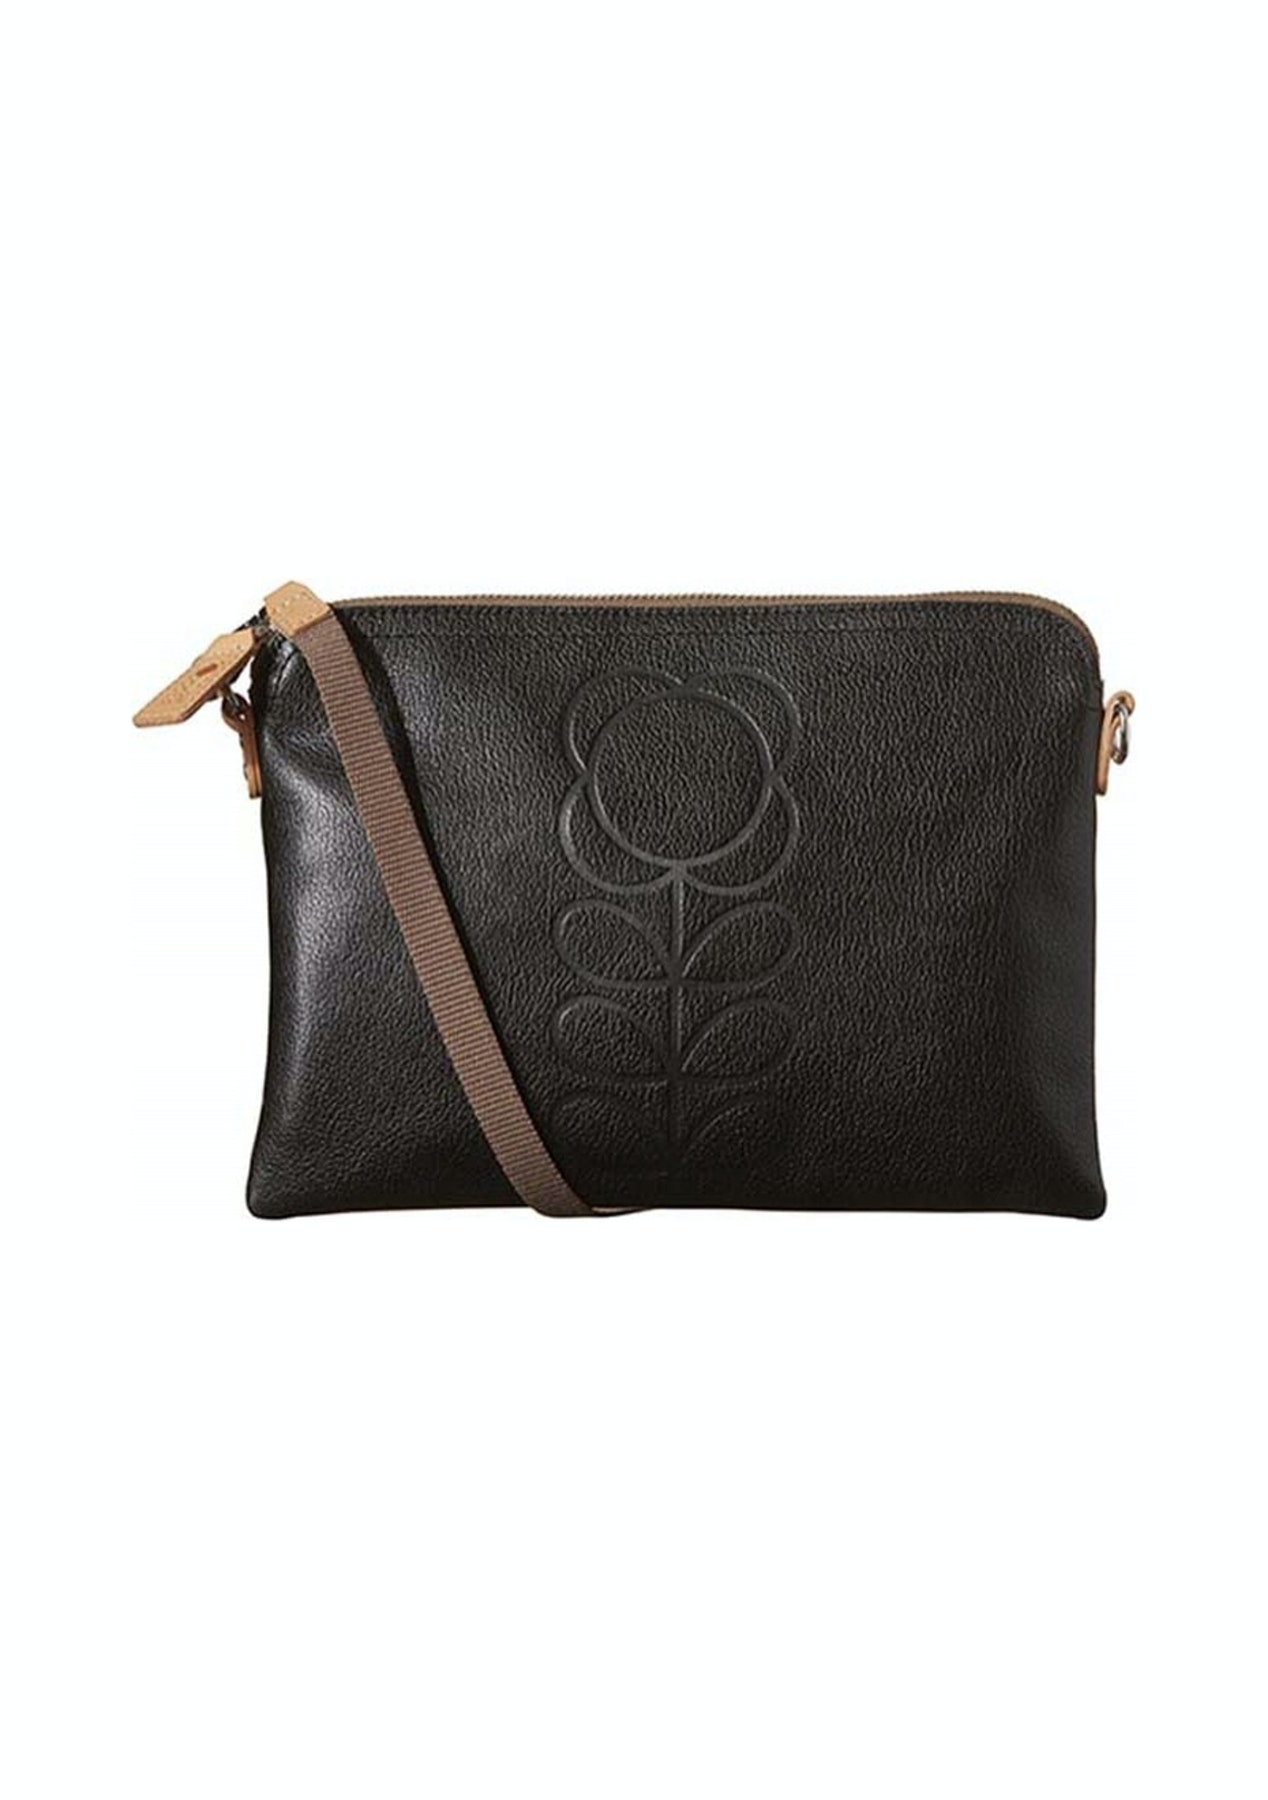 26b551481792 Orla Kiely - Flower Stem Embossed Leather Travel Pouch - Black - Orla Kiely  Up to 60% off - Onceit